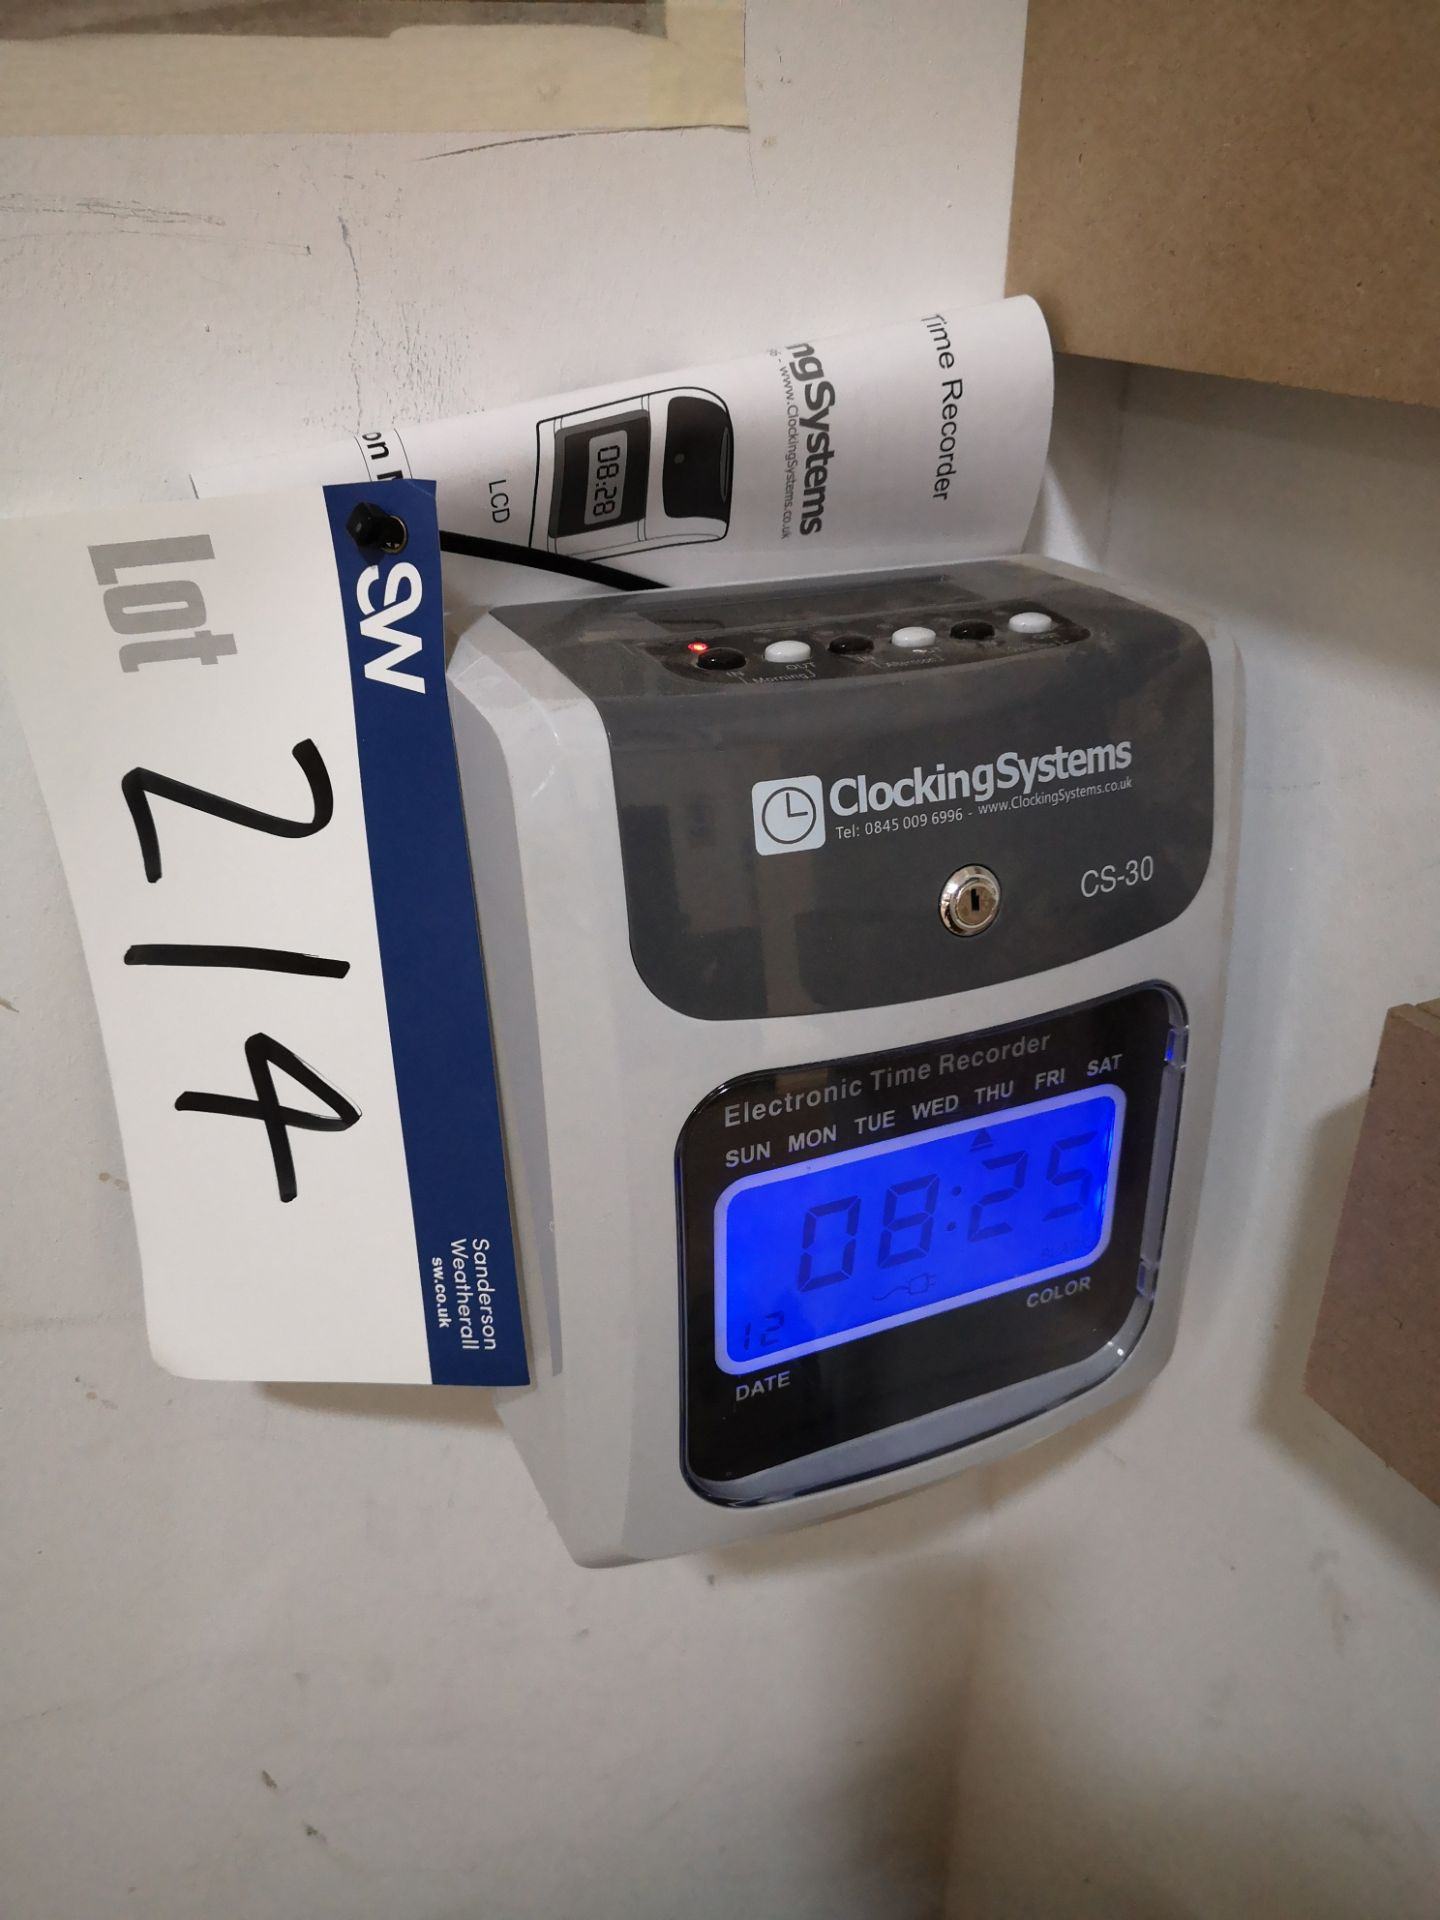 Lot 214 - Clocking Systems CS-30 Electronic Time Recorder (L